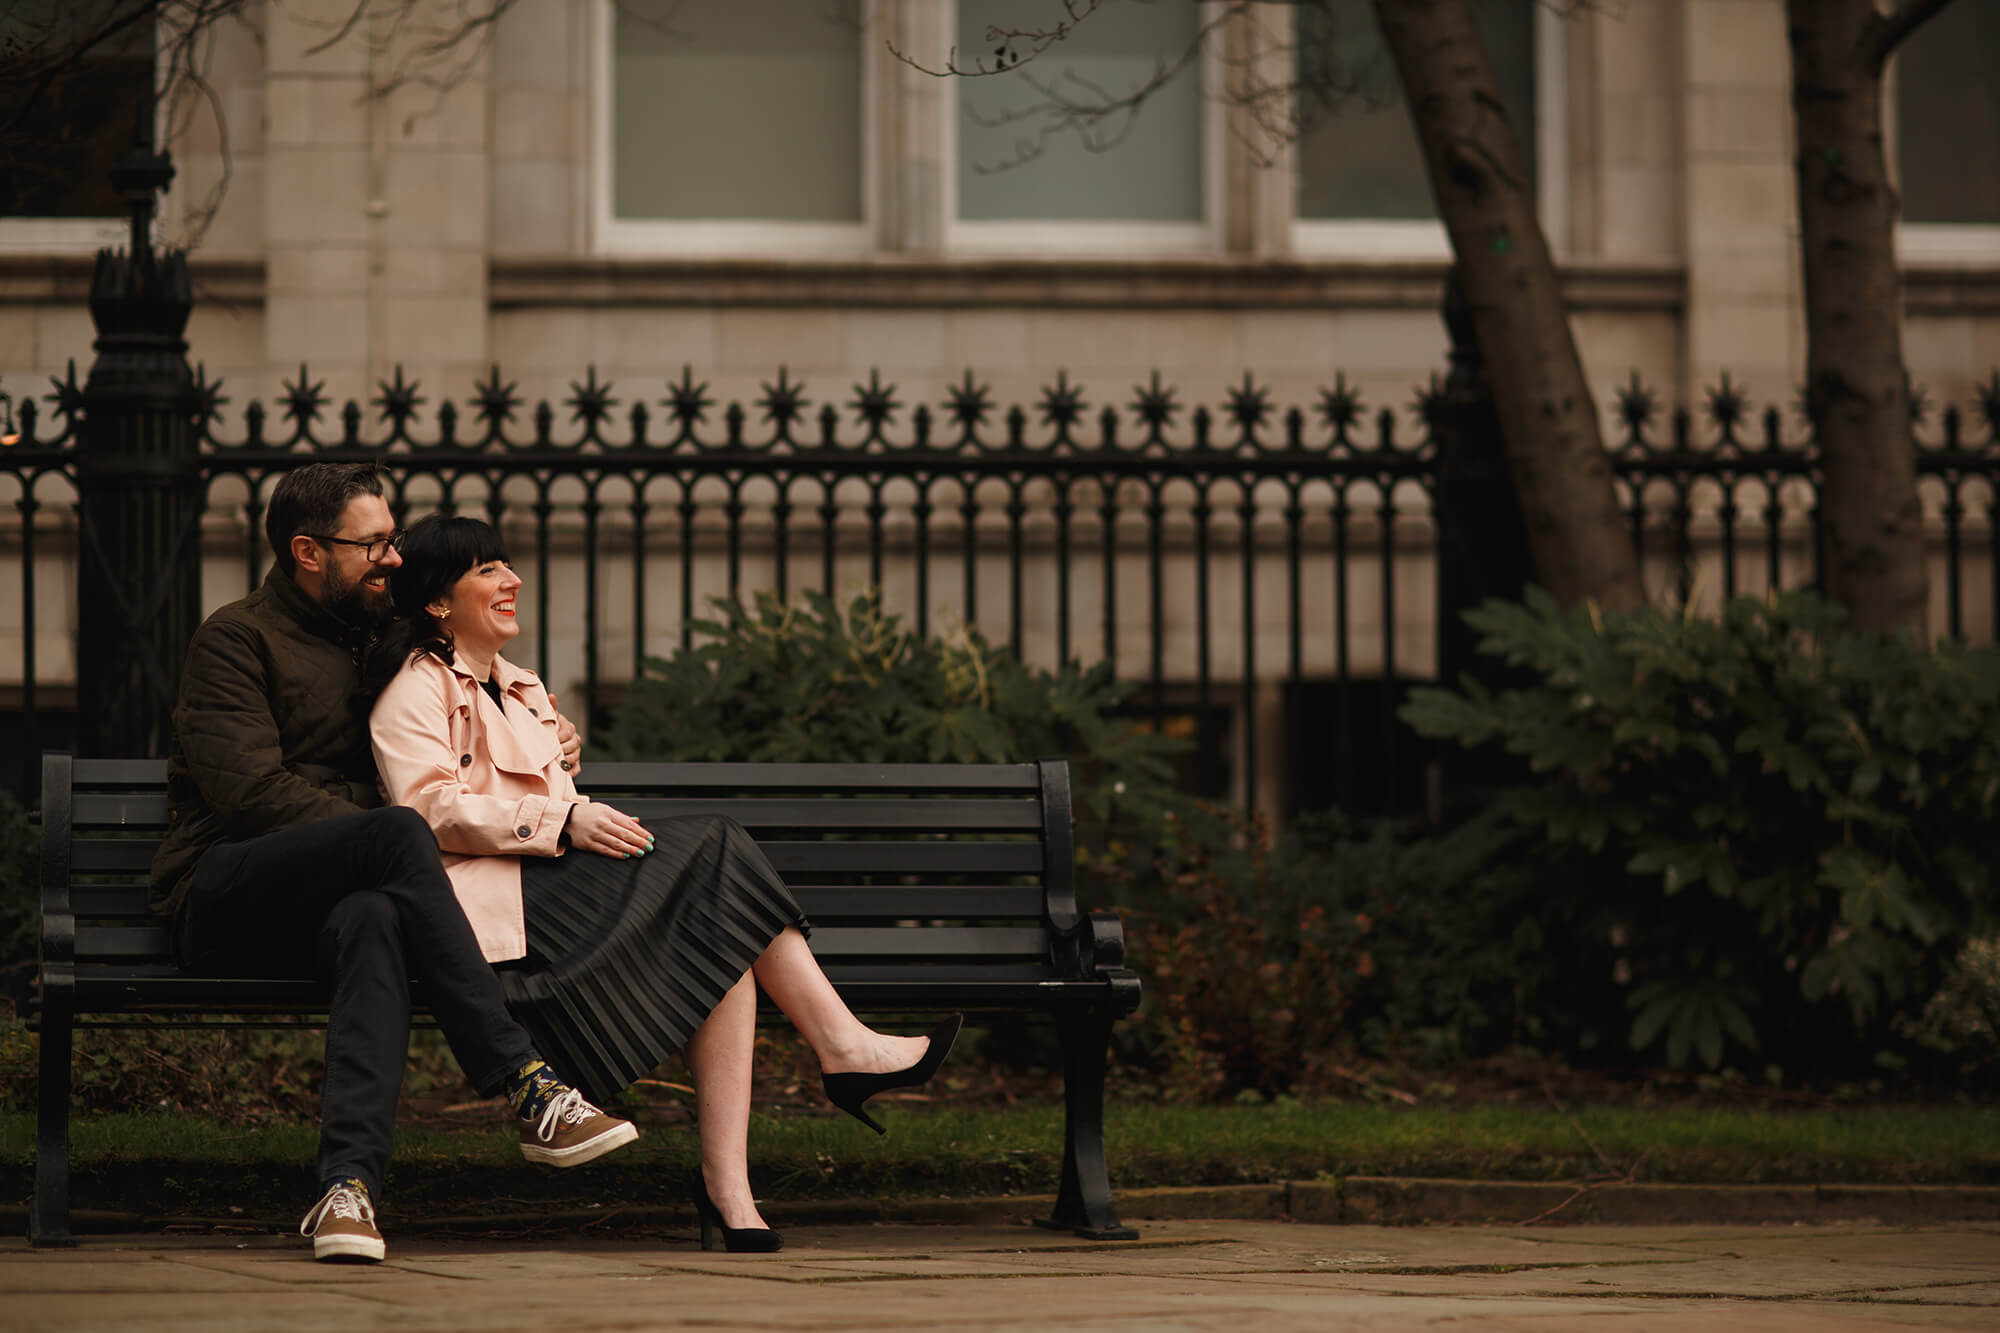 engaged couple sat on bench